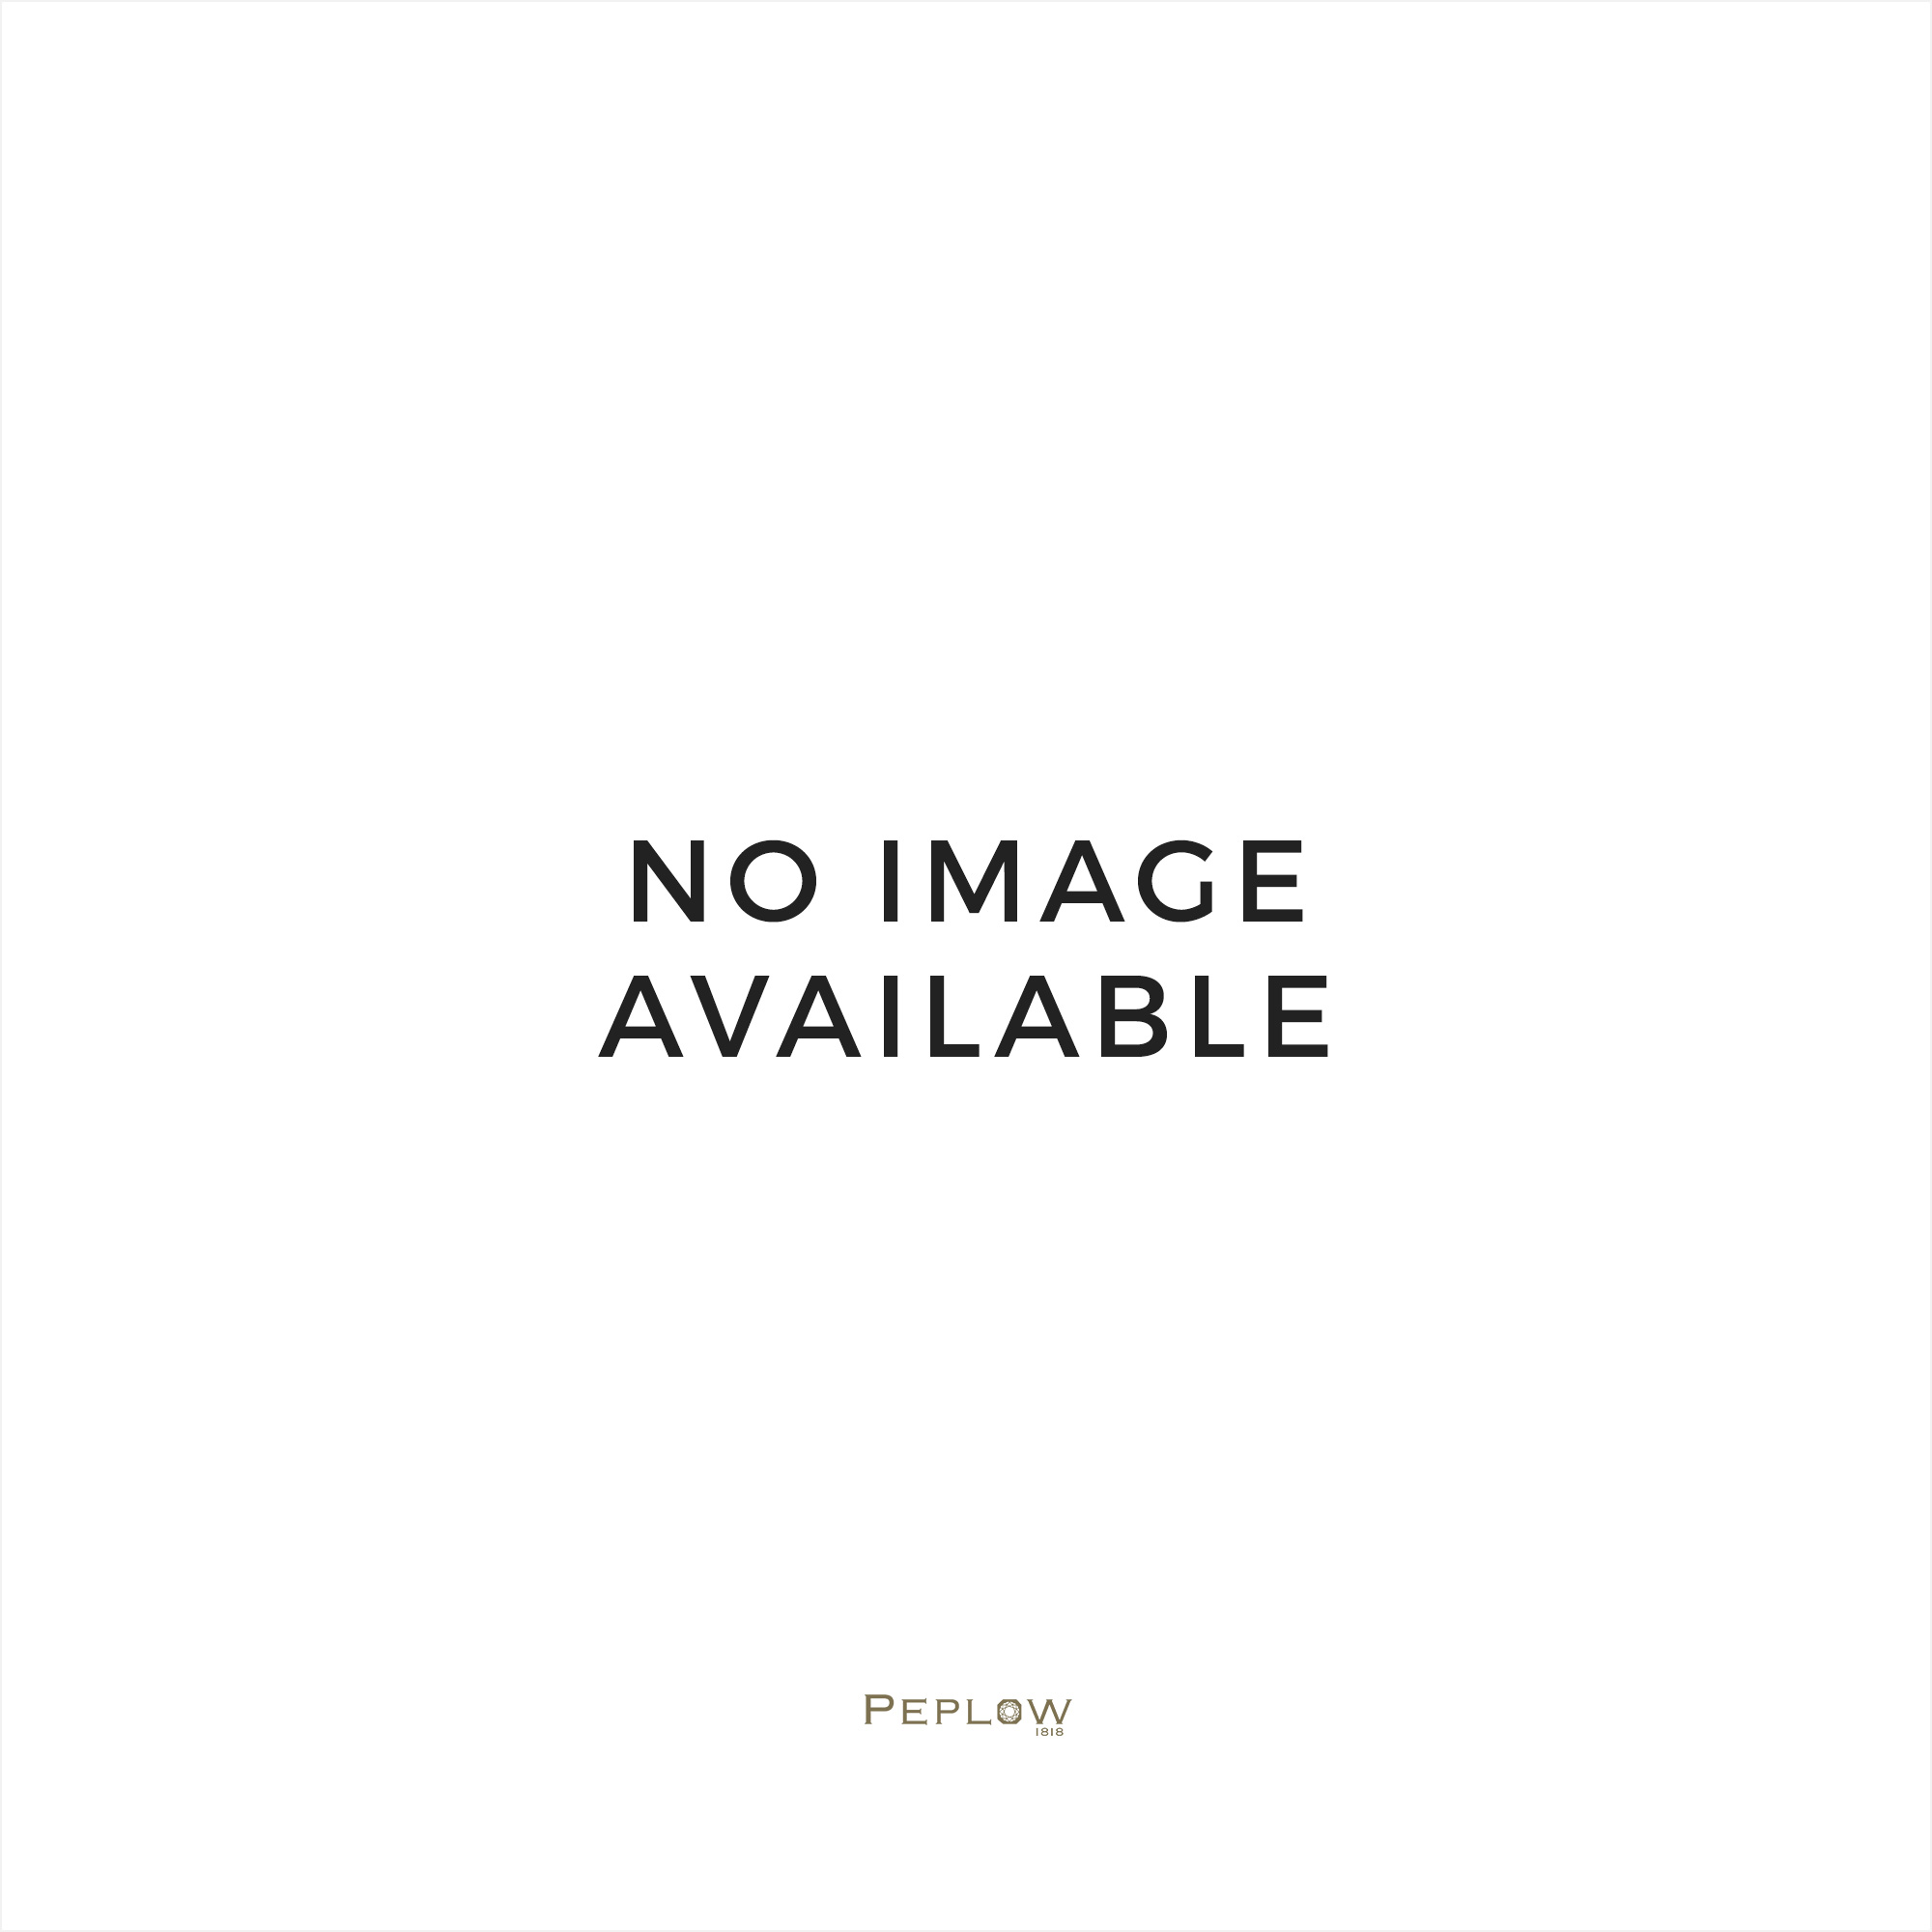 Rotarty Gents Ocean Avenger Stainless Steel Watch